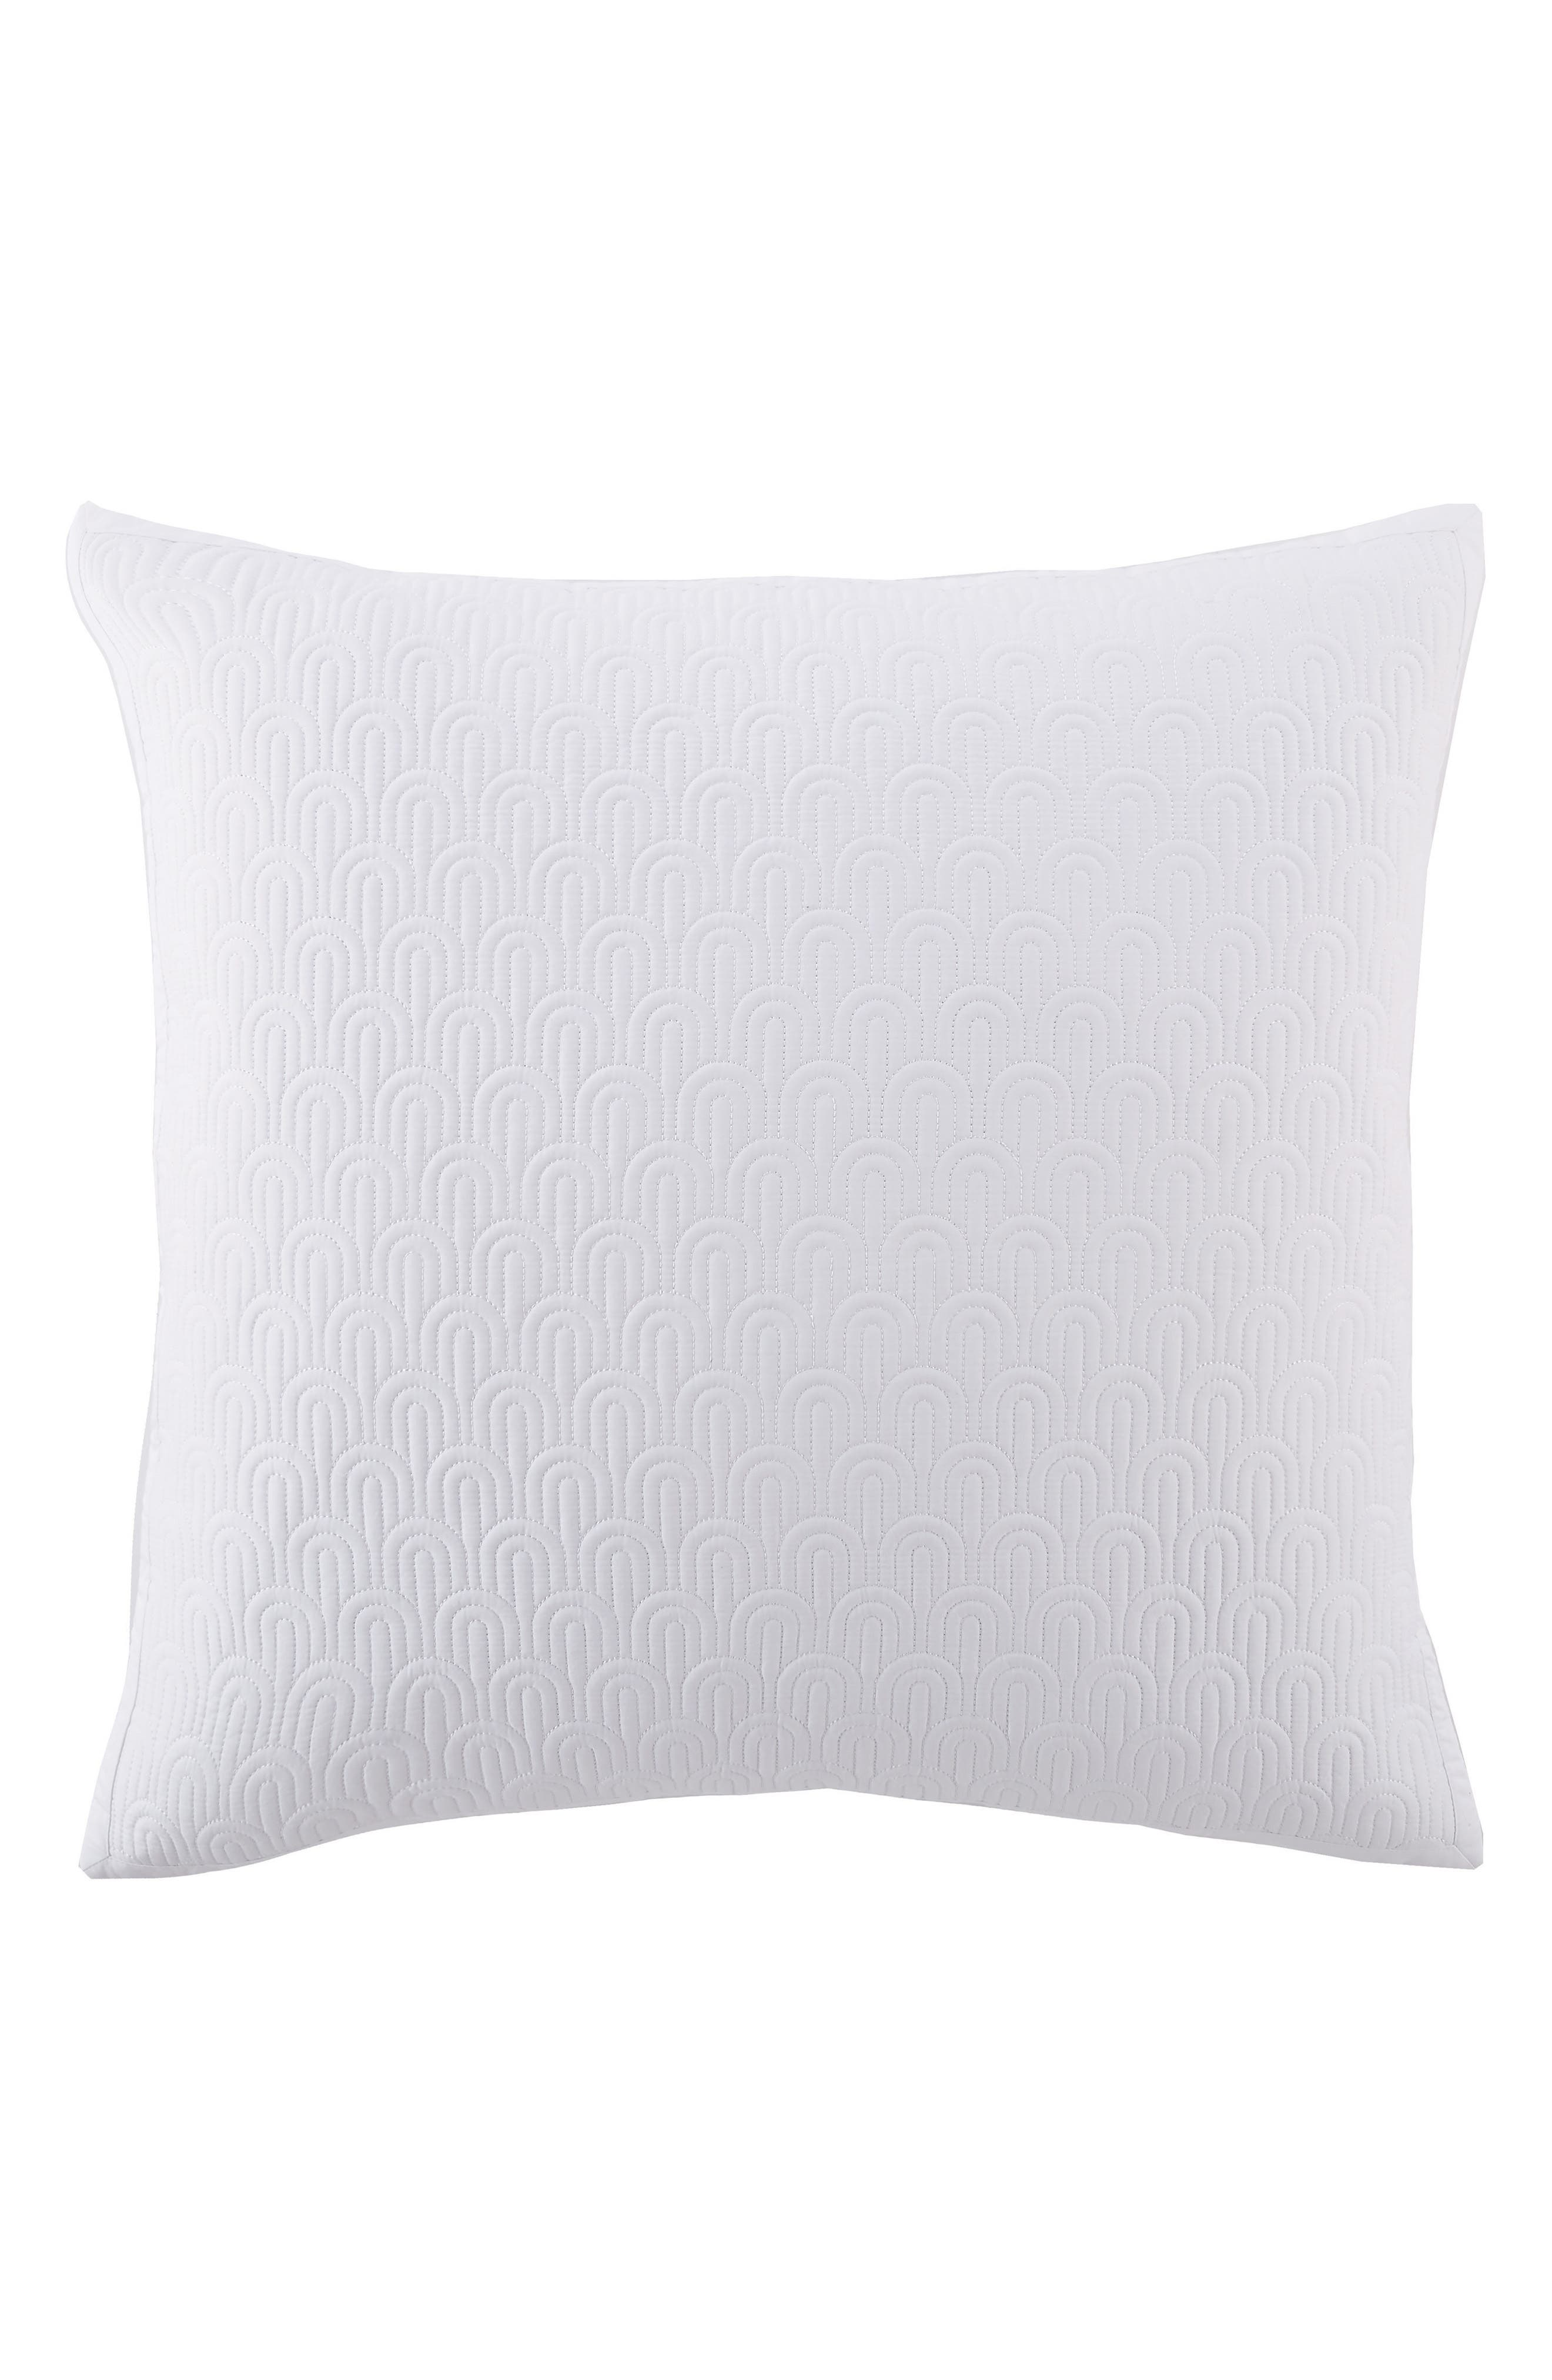 Quilted Euro Sham,                         Main,                         color, White